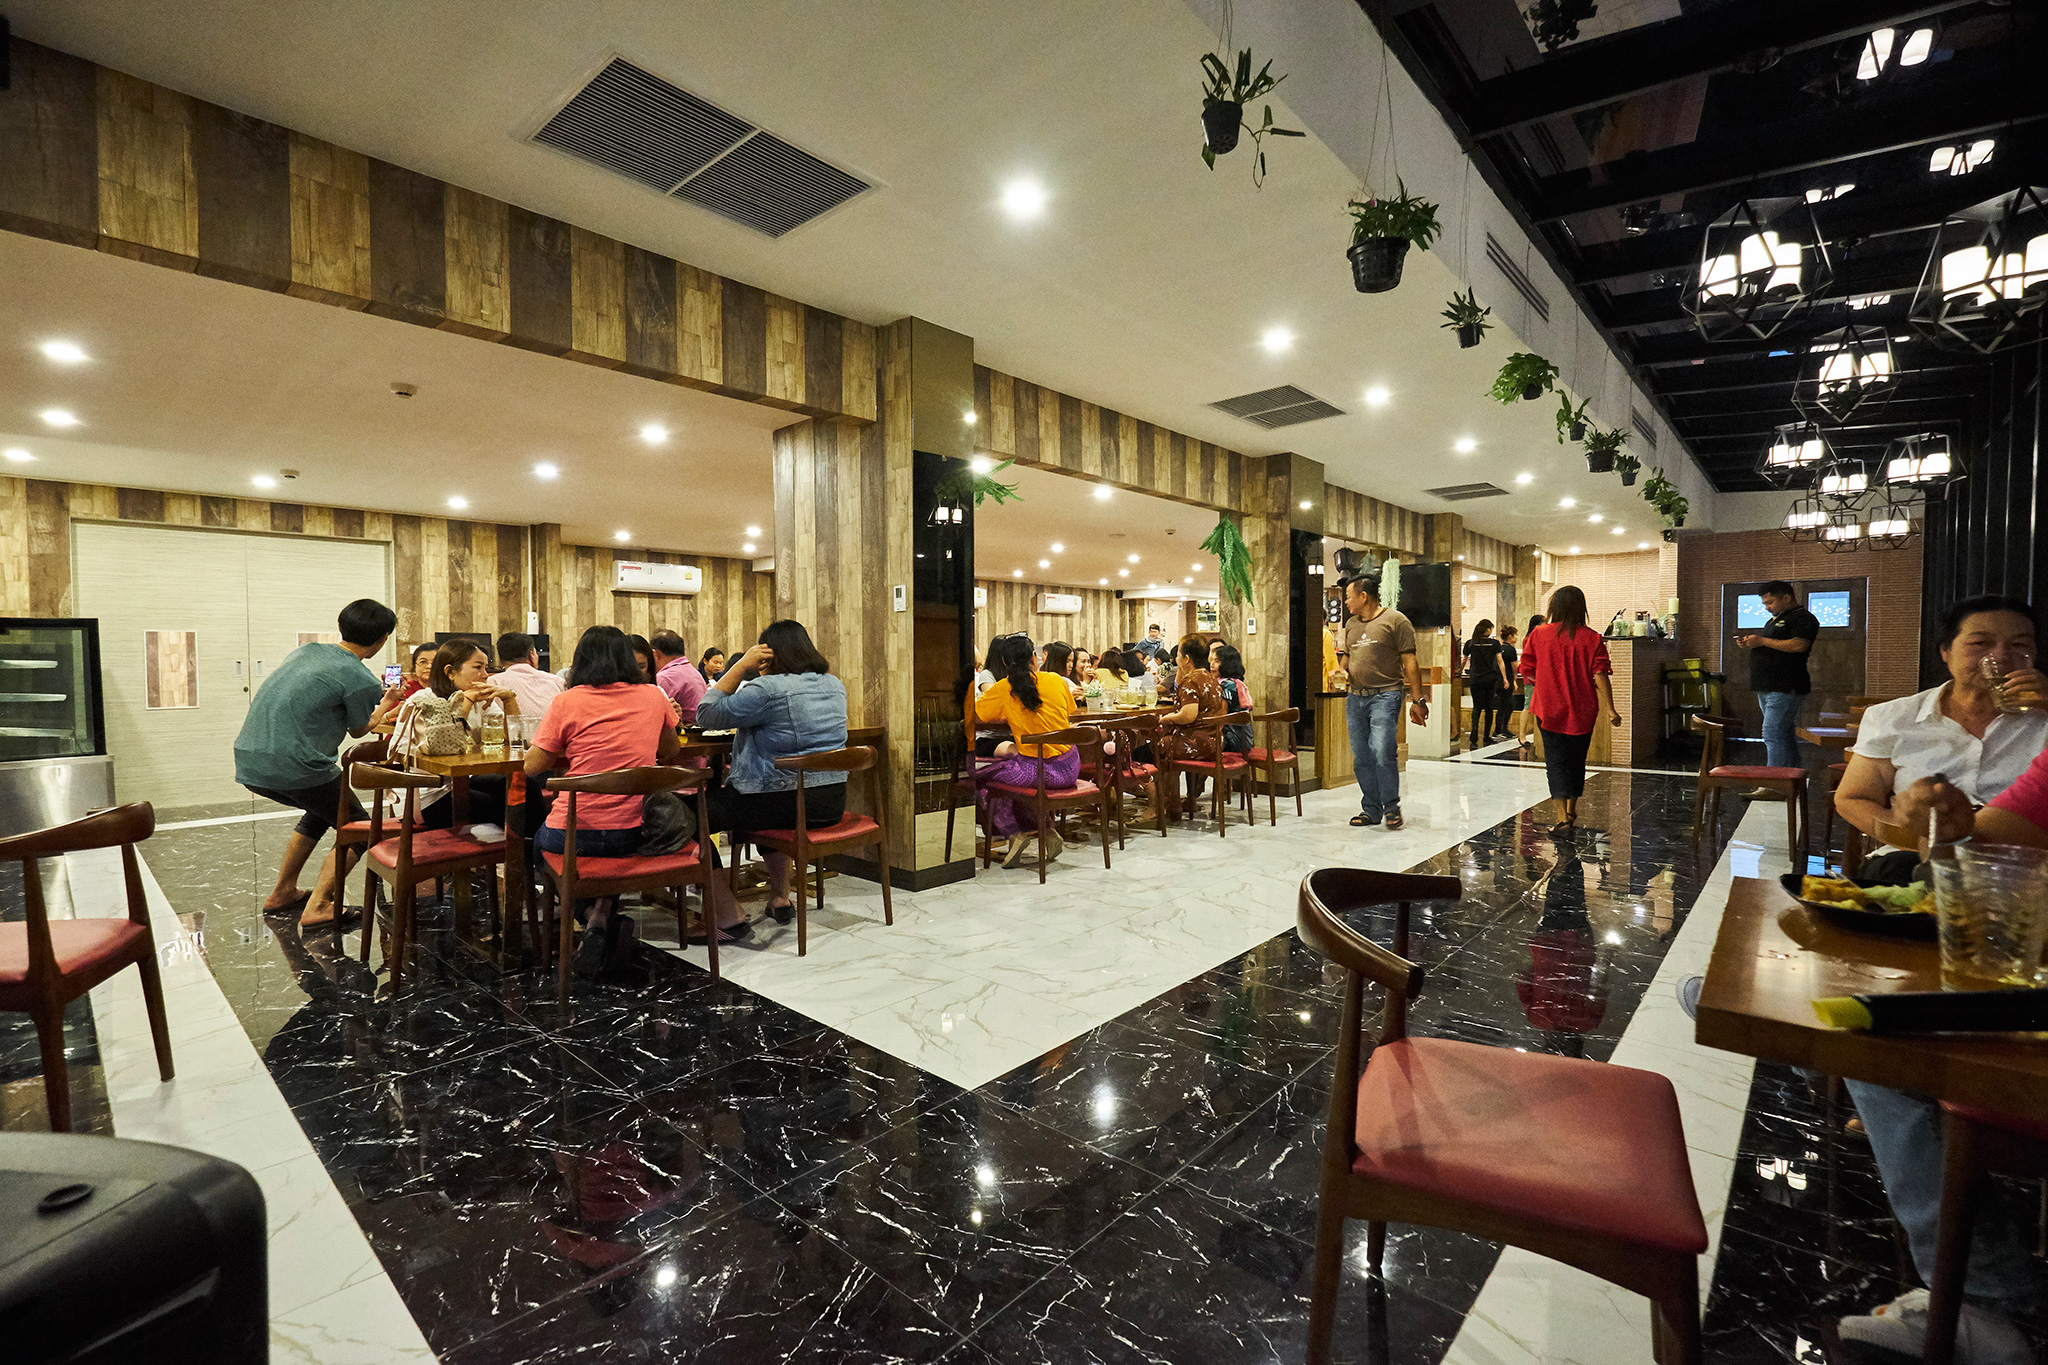 Sonia Residence Restaurant and Function Room